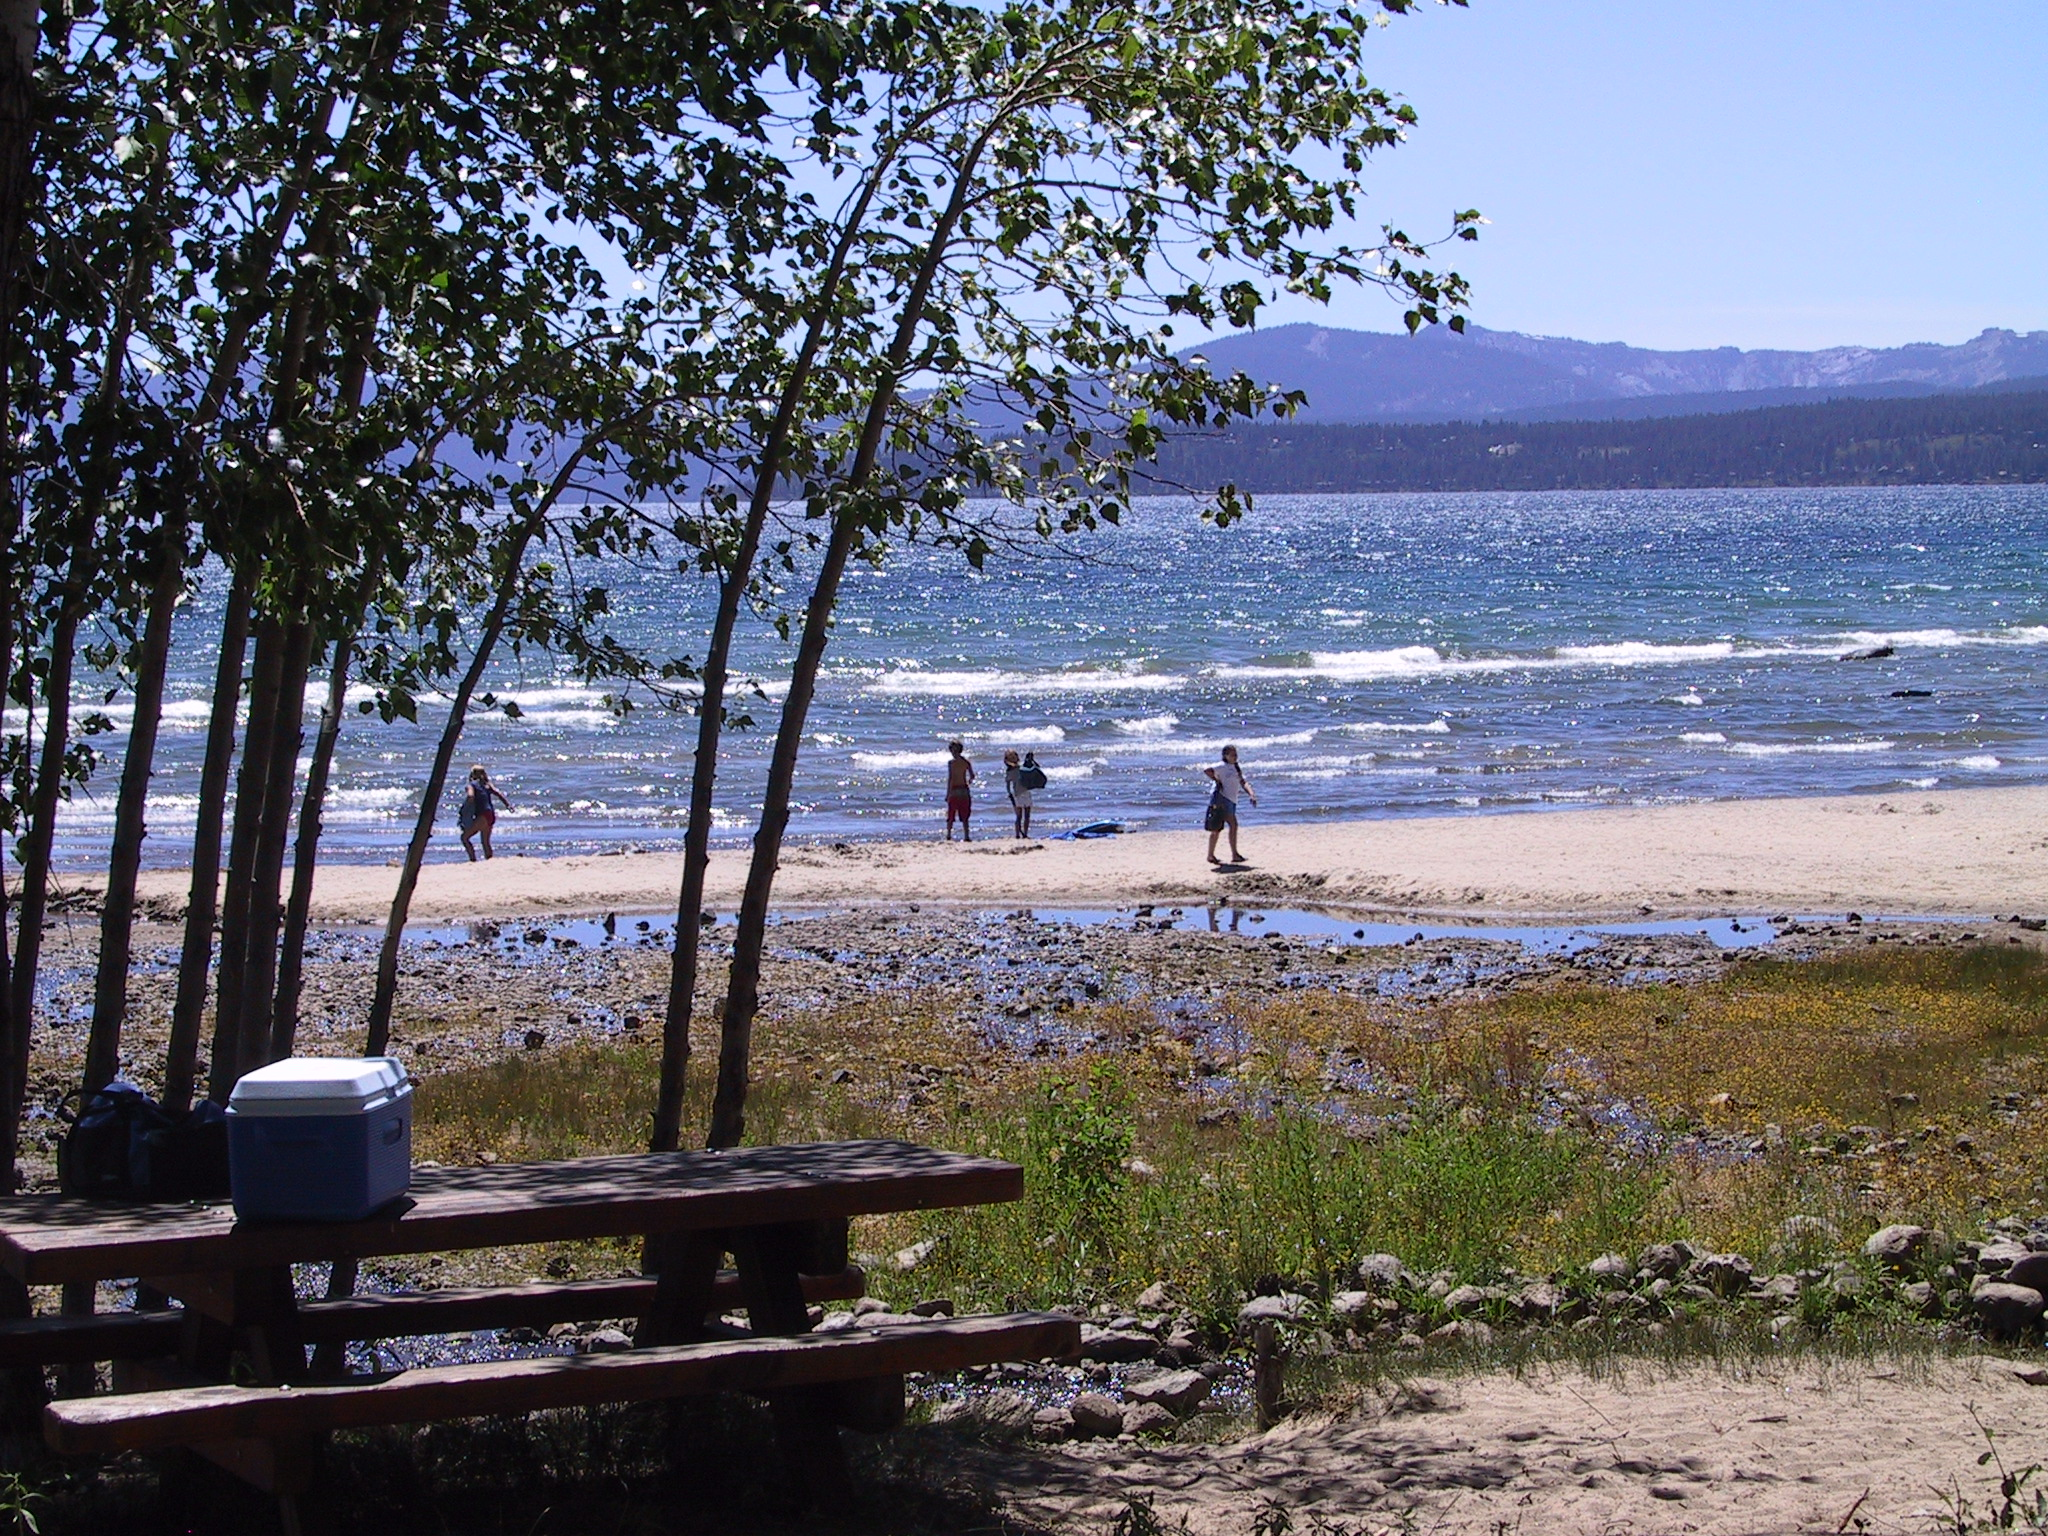 Secline Beach Image 1